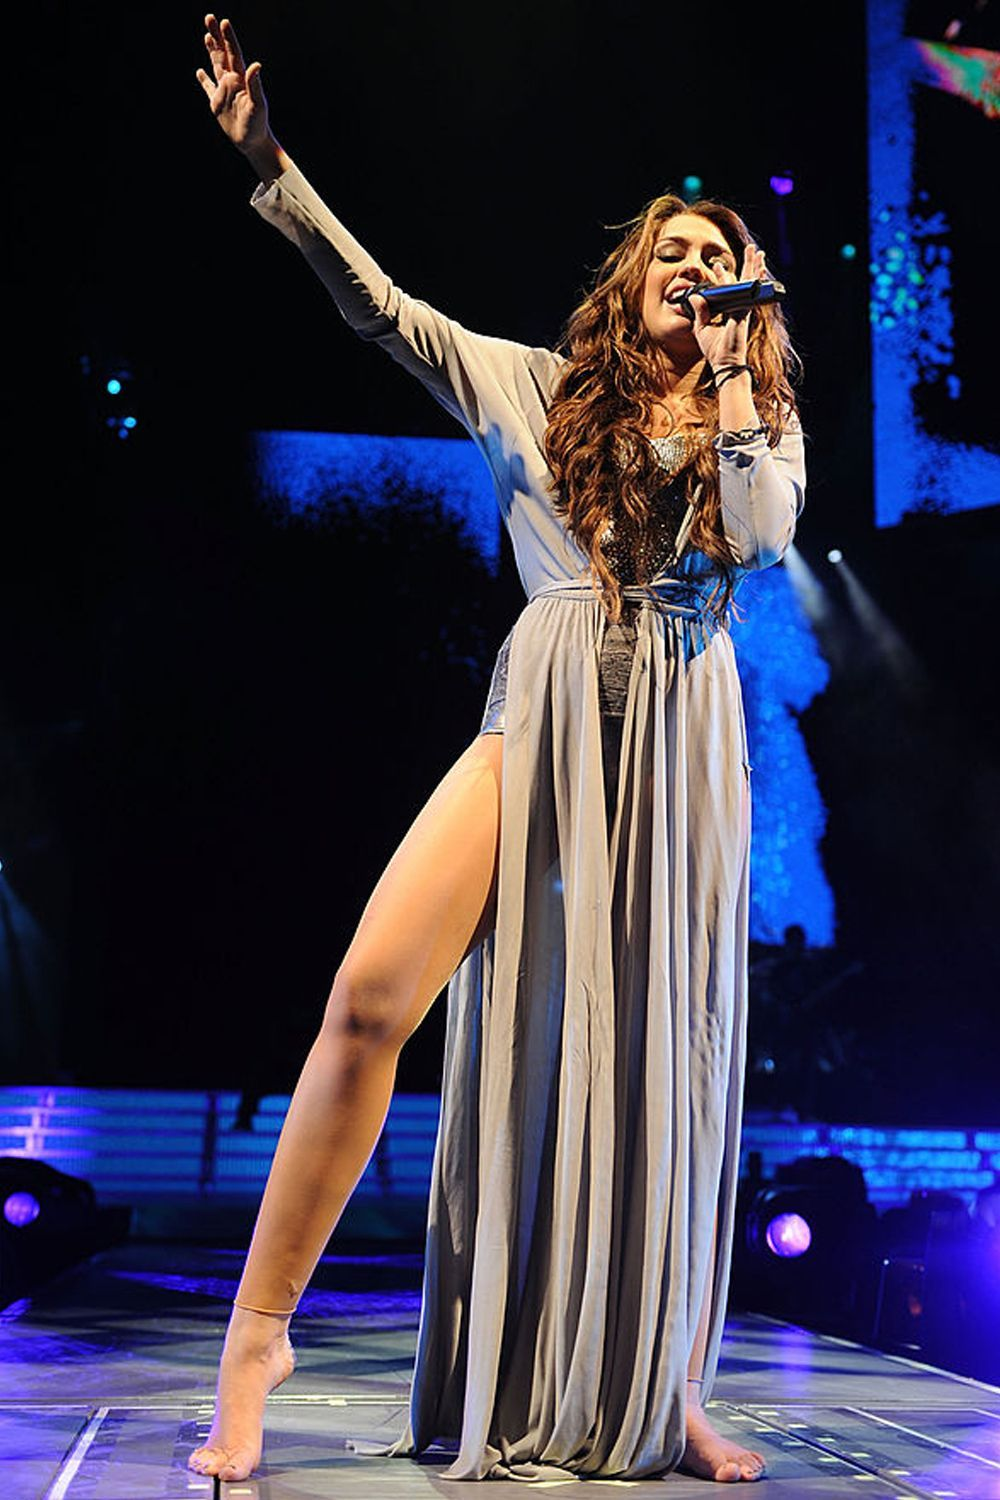 Miley Cyrus's Best Stage Looks of All Time Miley cyrus